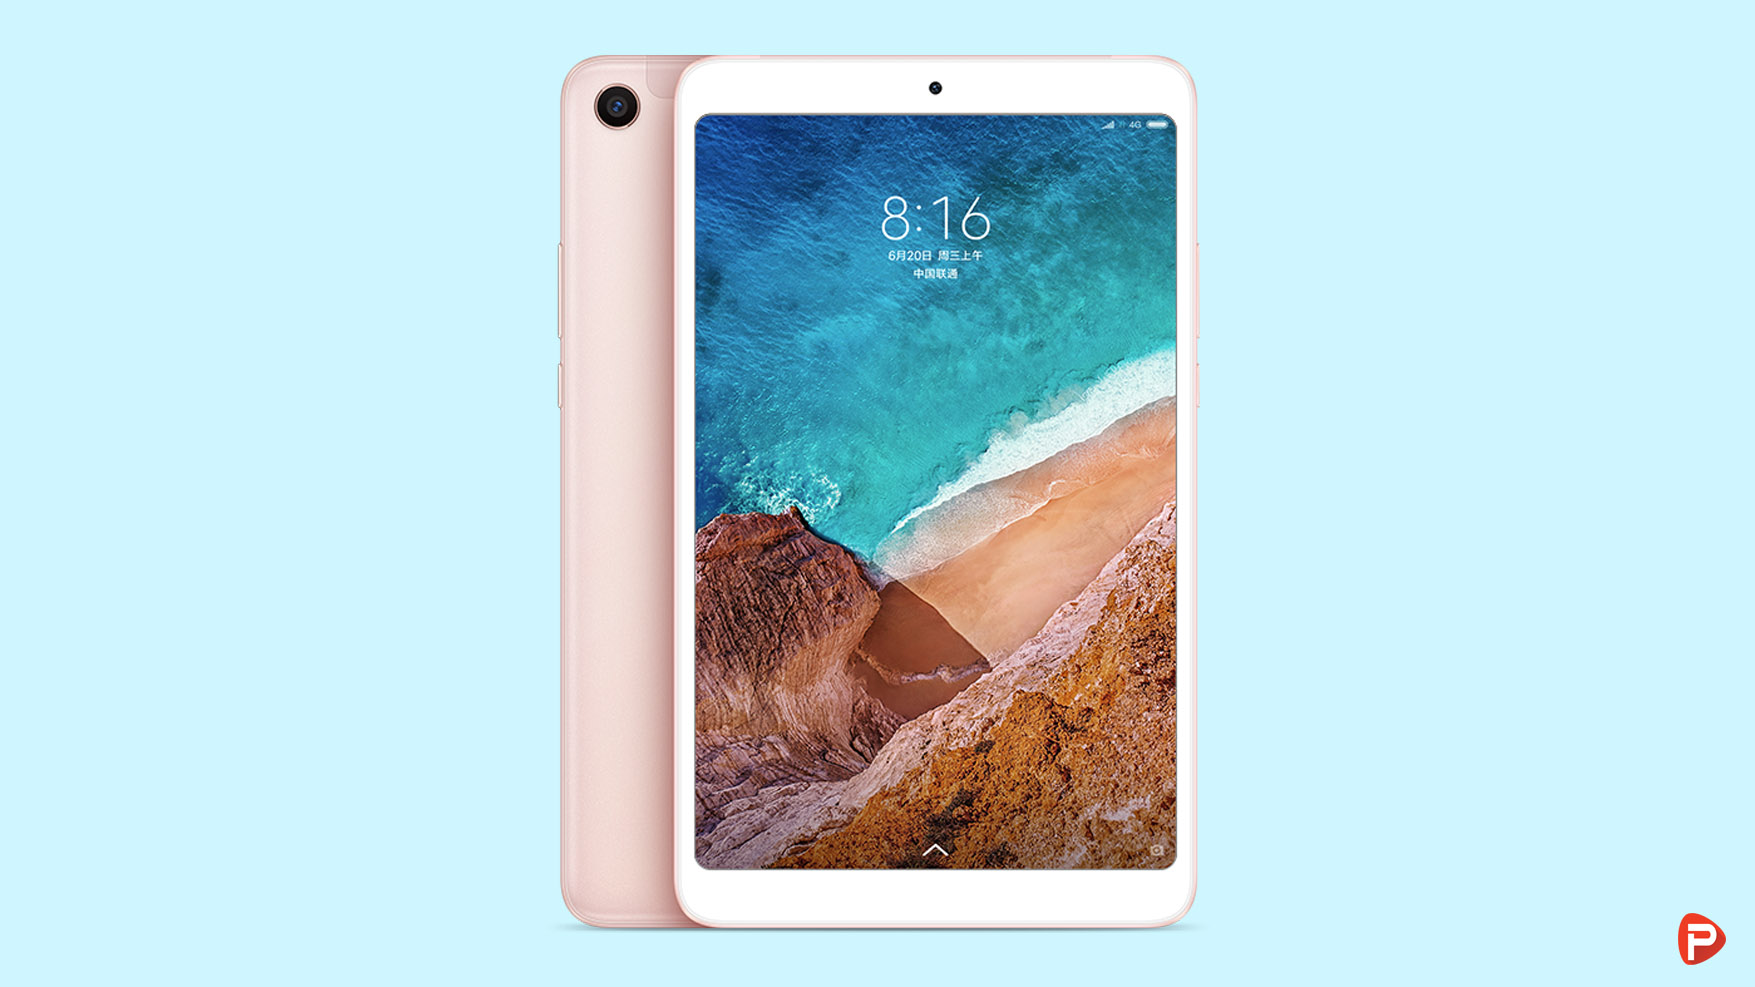 Mi Pad 4 price in Nepal